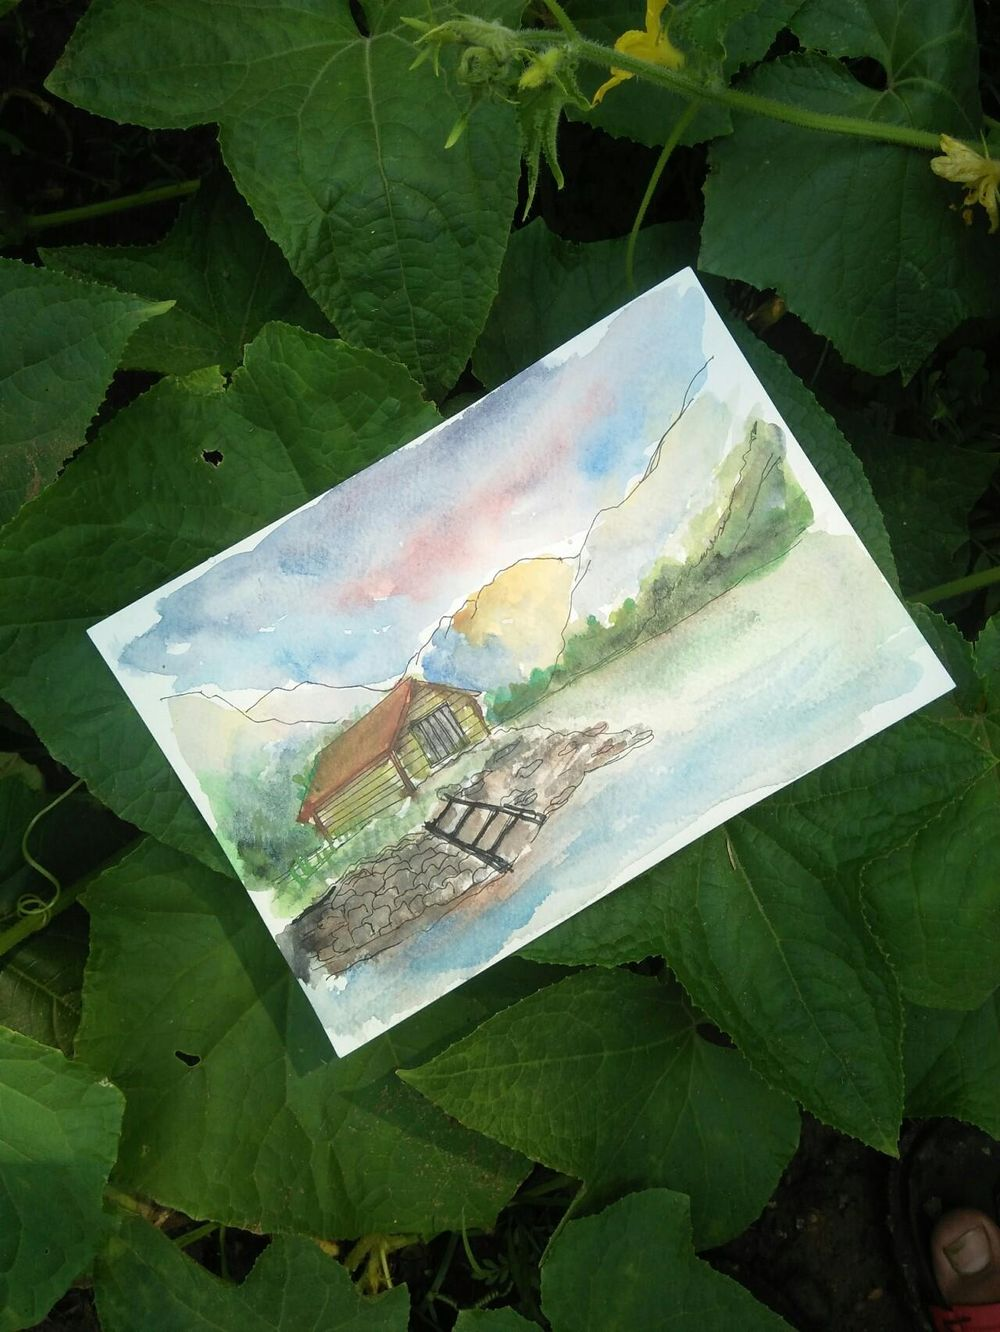 Watercolor sceneries - image 2 - student project